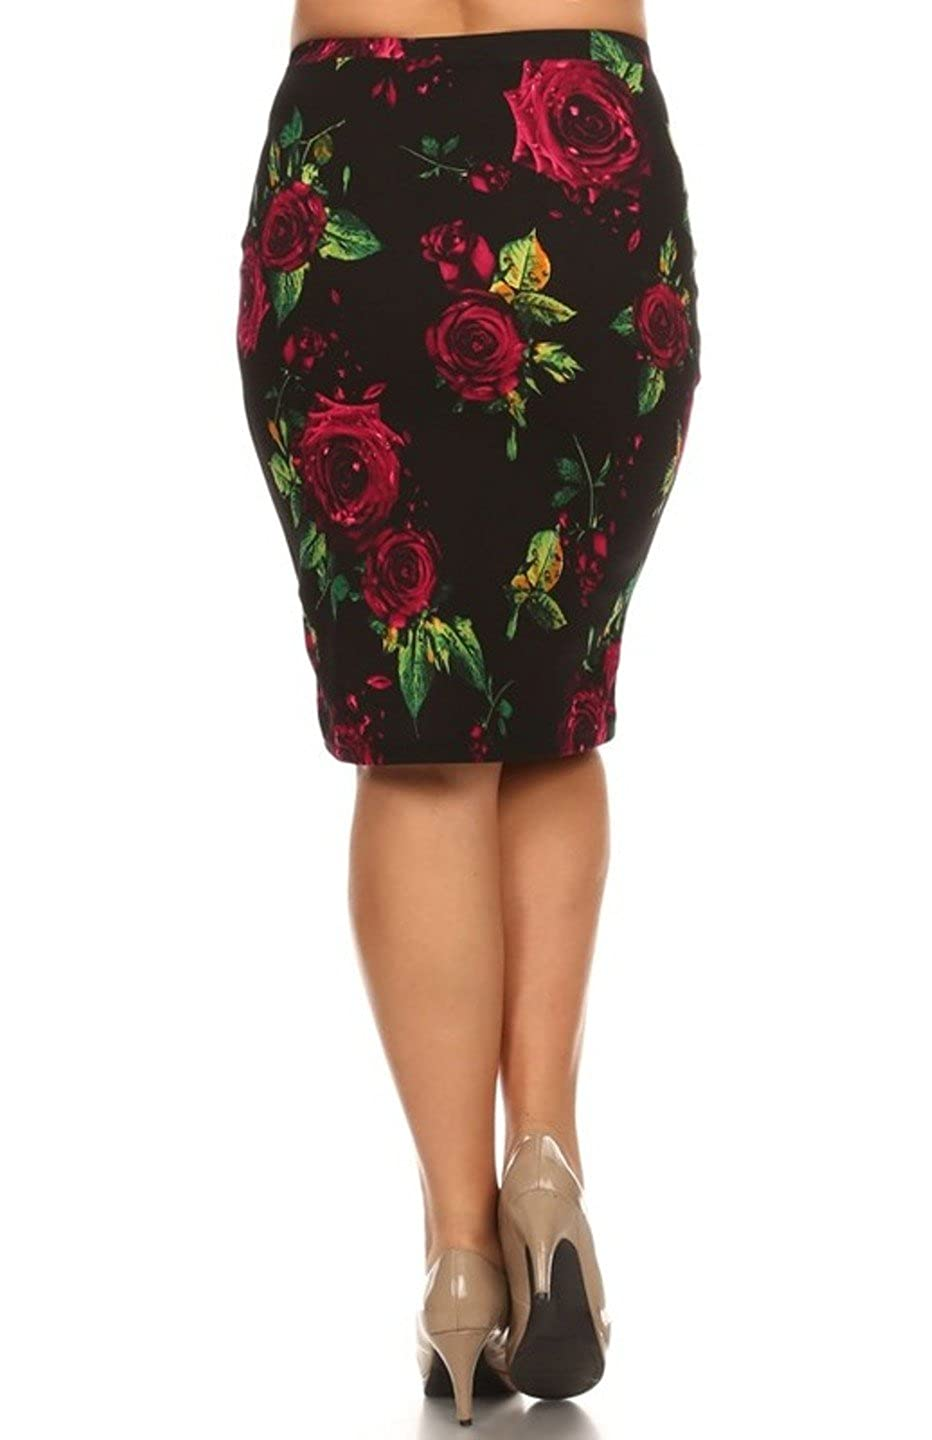 0b8828535f8 2LUV Plus Women s Floral Printed High Waist Fitted Pencil Skirt Black  Purple 2XL at Amazon Women s Clothing store